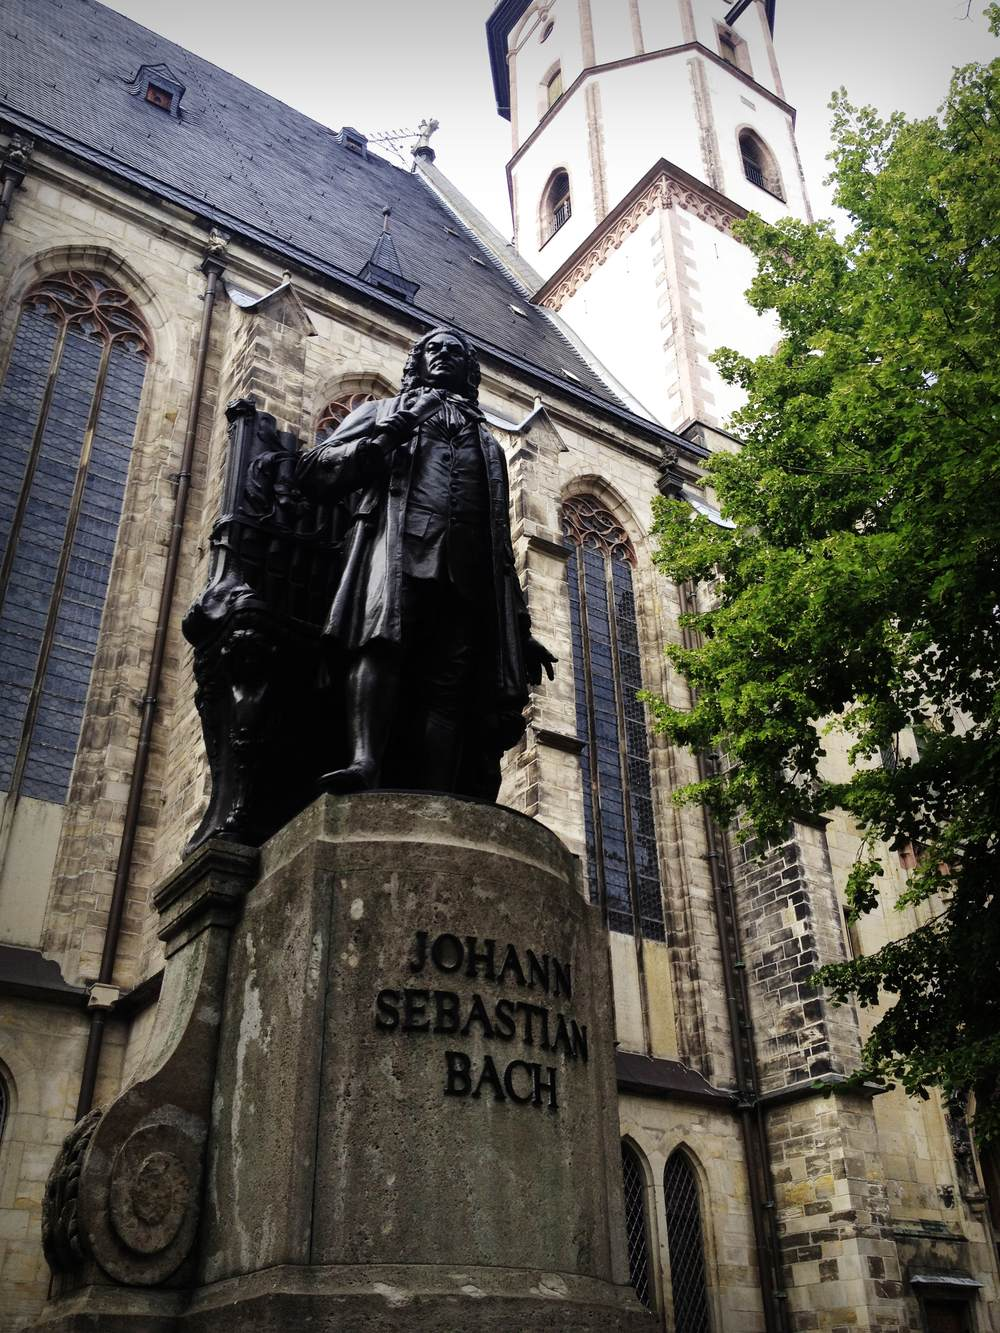 The monument to J.S.Bach in Leipzig, the city where the famous composer has lived for over 30 years.